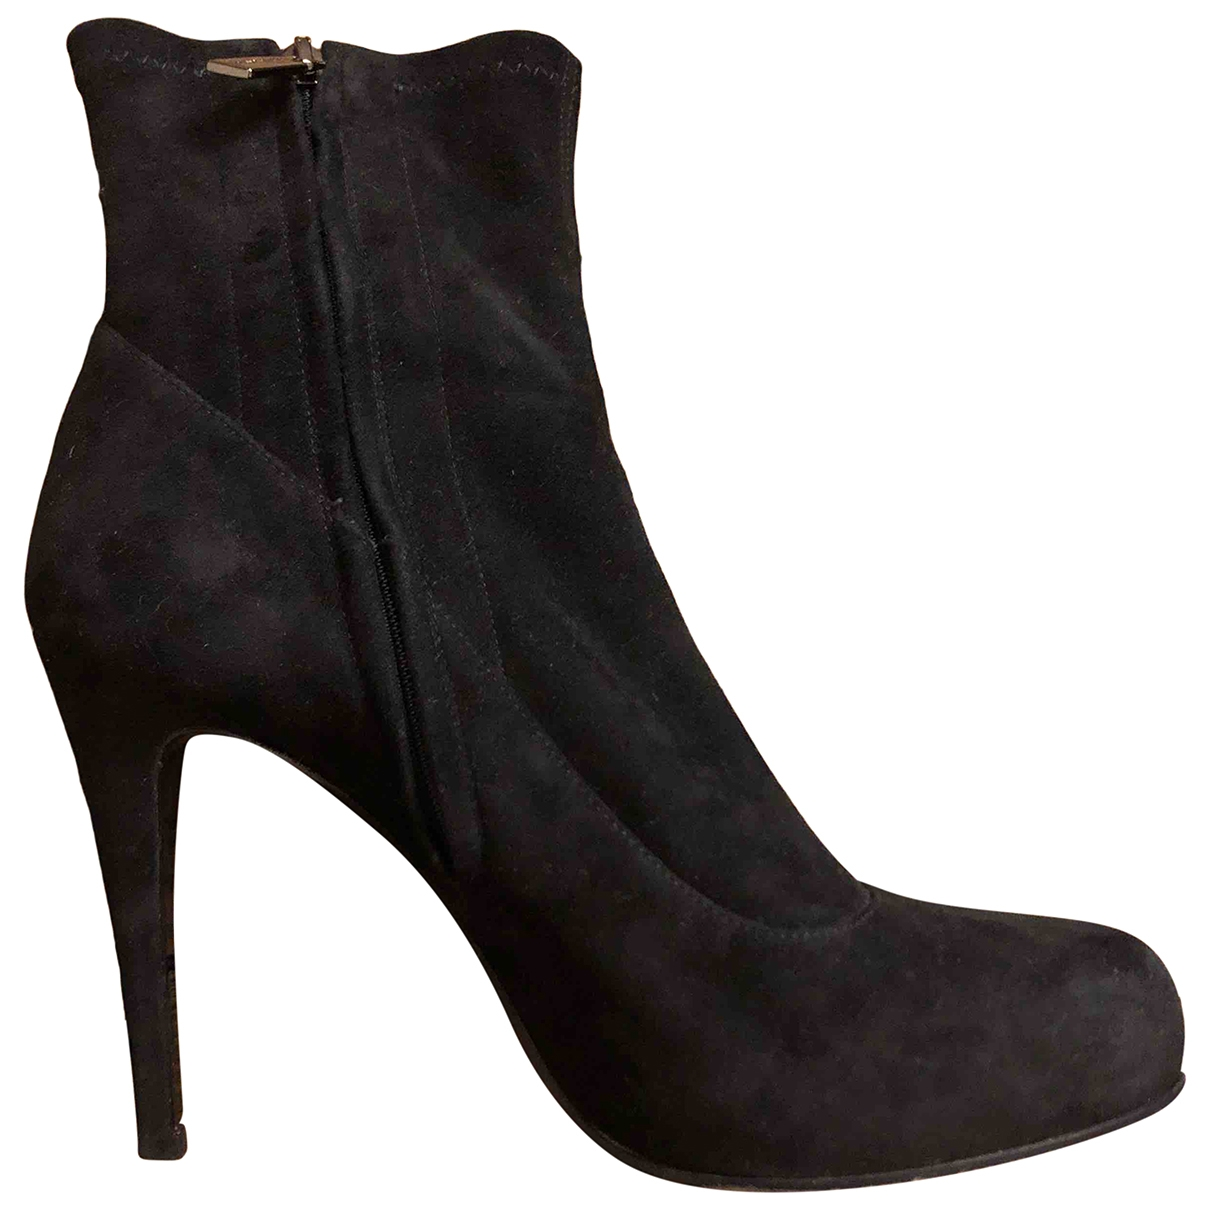 Bruno Magli \N Black Suede Boots for Women 38 EU